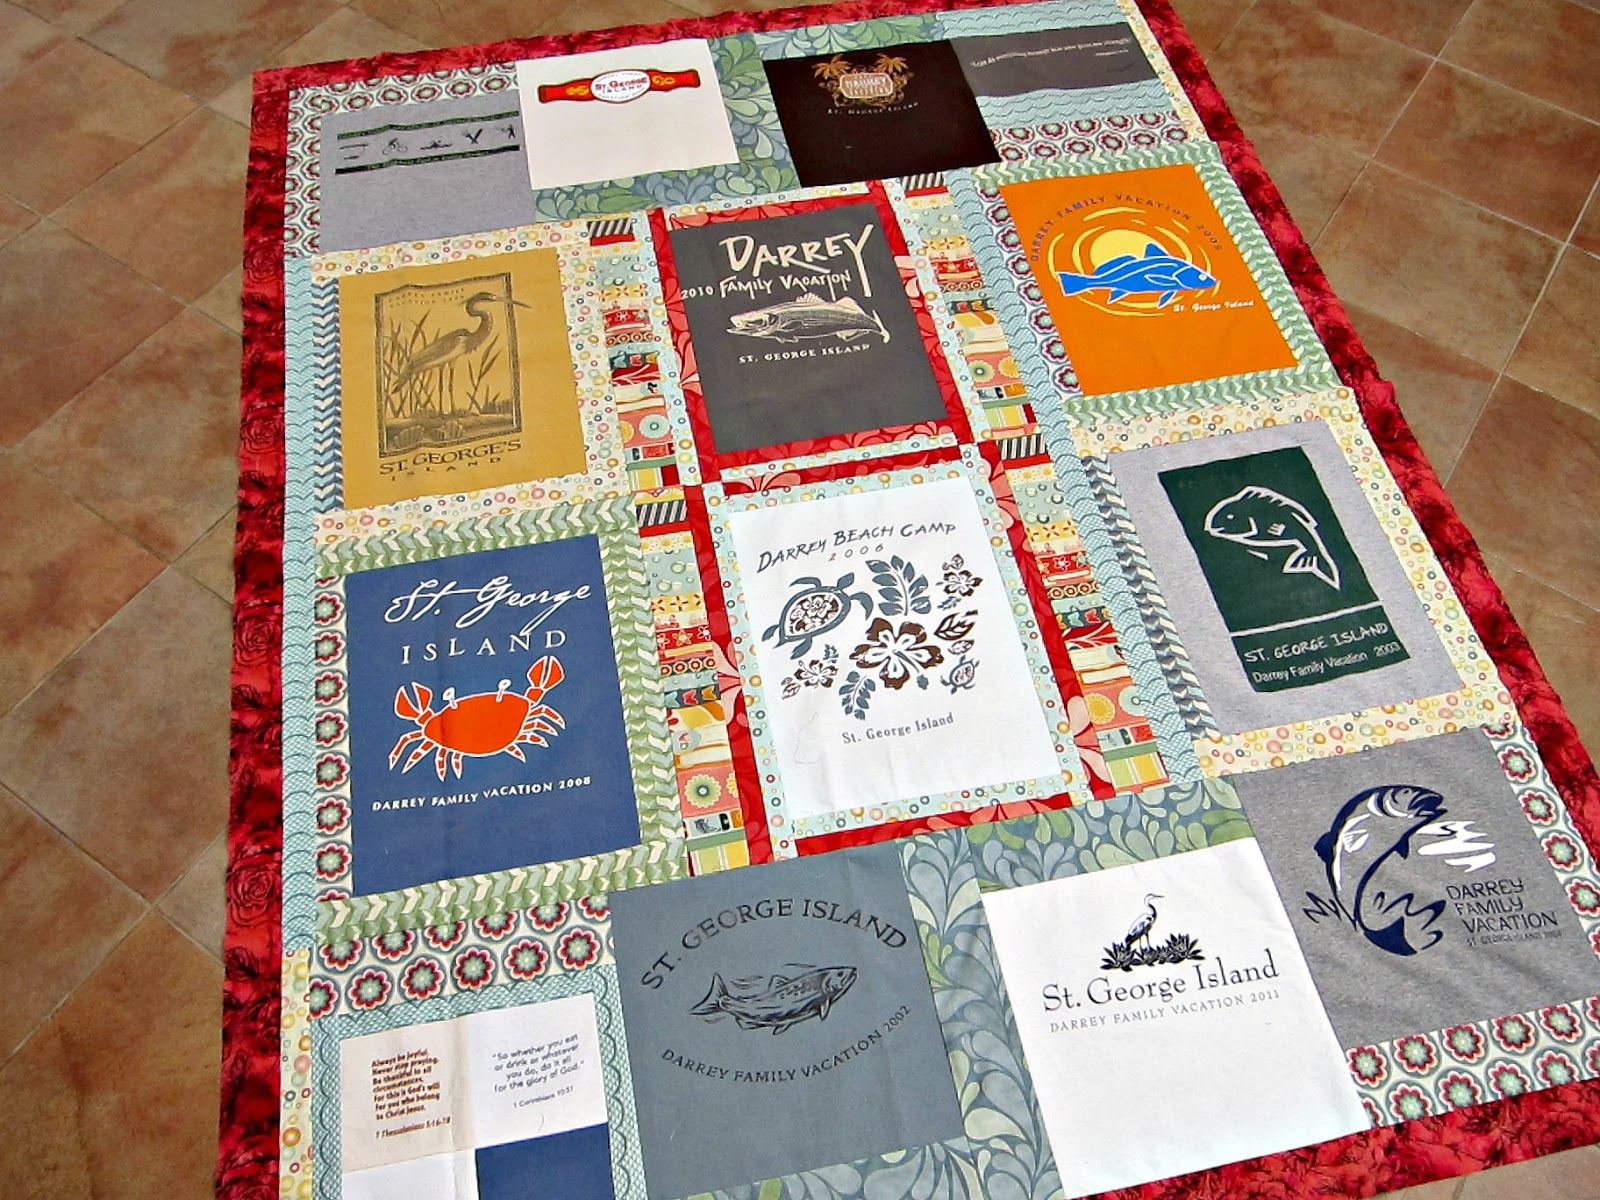 T Shirt Quilting Patterns : The Quilting Violinist: A complete T shirt quilt top